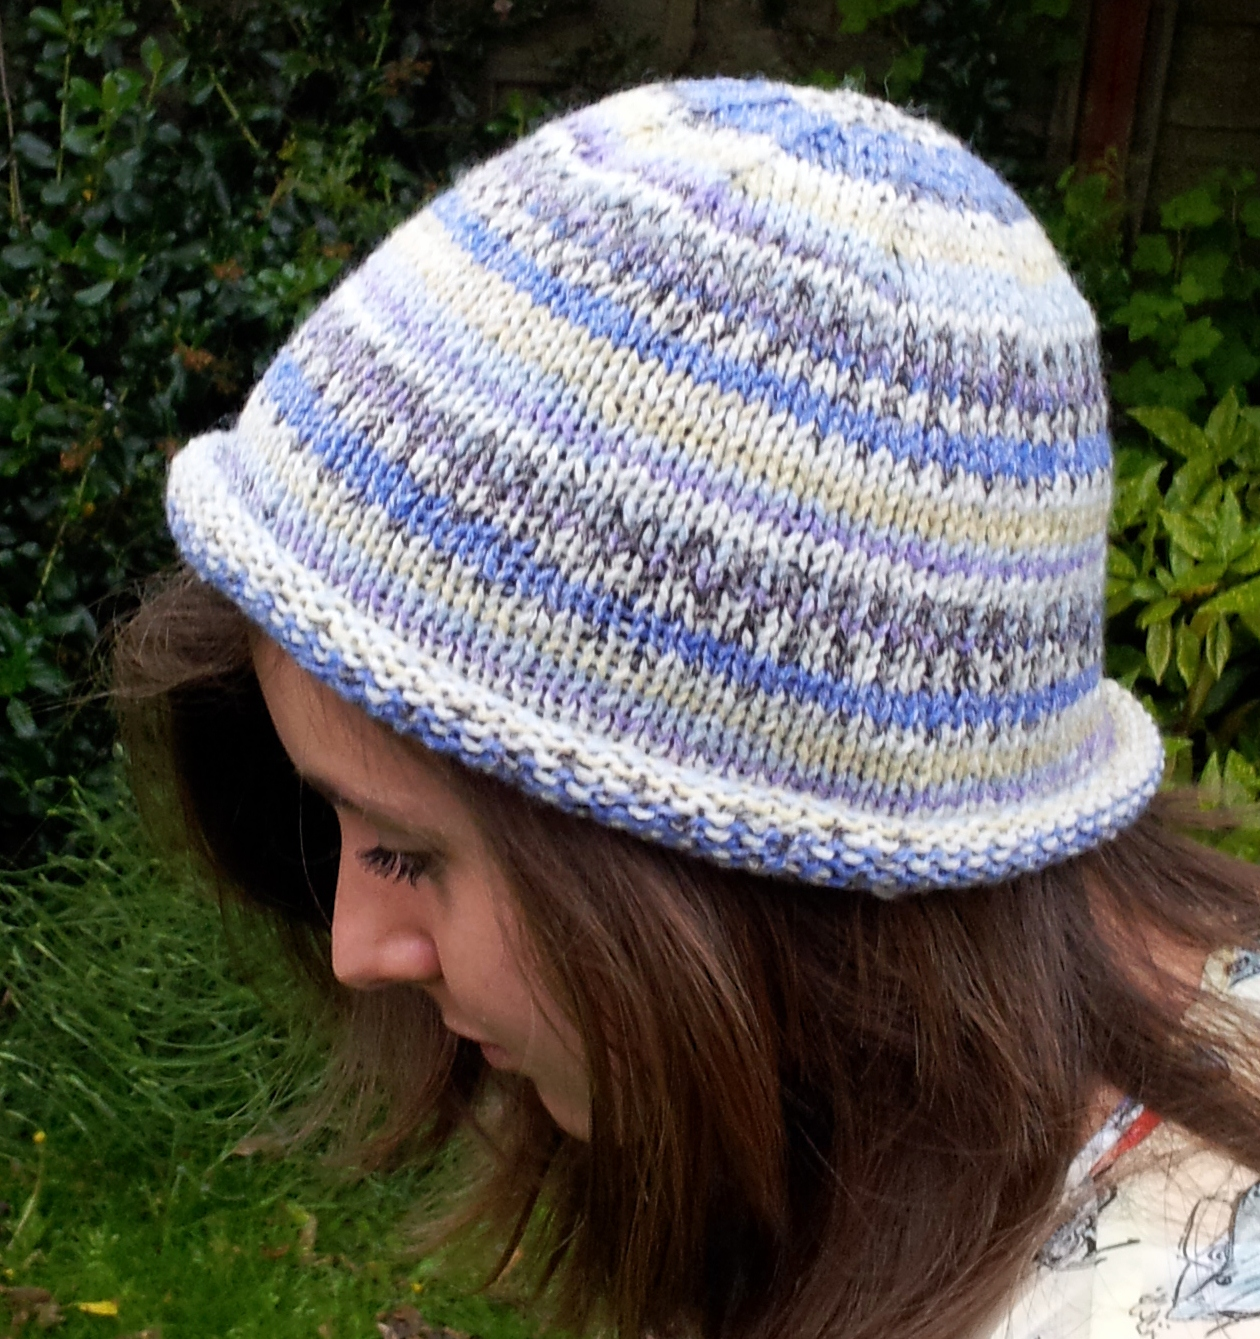 Knit Pattern Beanie With Brim : Knitted Rolled Brim Beanie Hat   Free beginners pattern ...